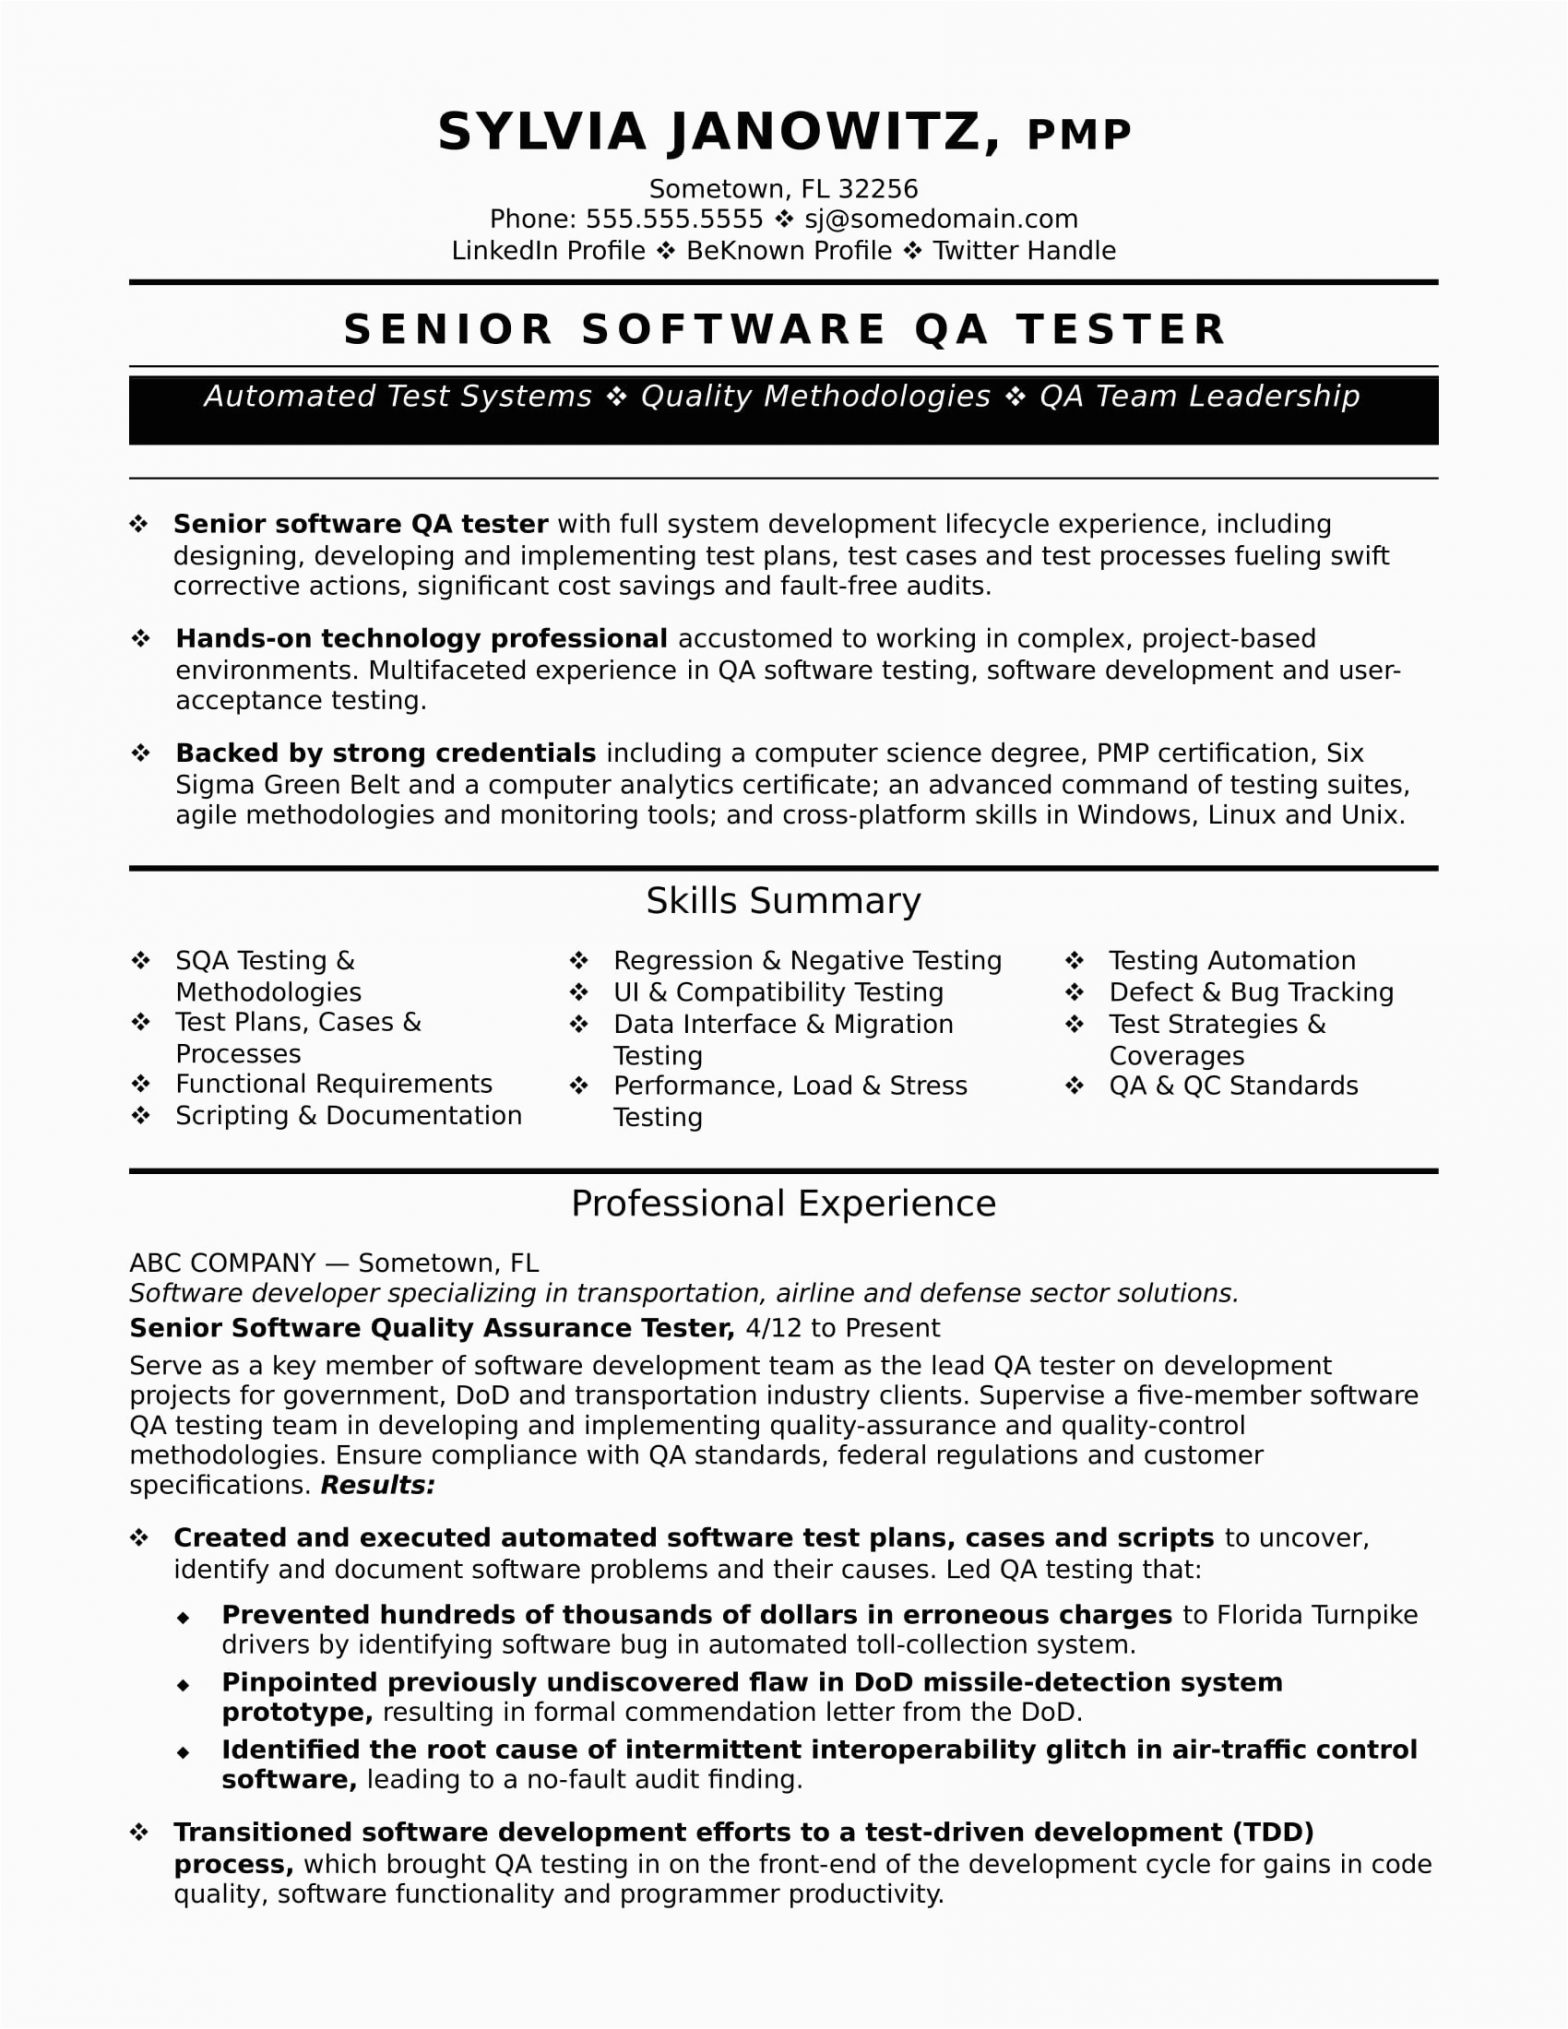 Sample Resume format for Experienced software Test Engineer Experienced Qa software Tester Resume Sample